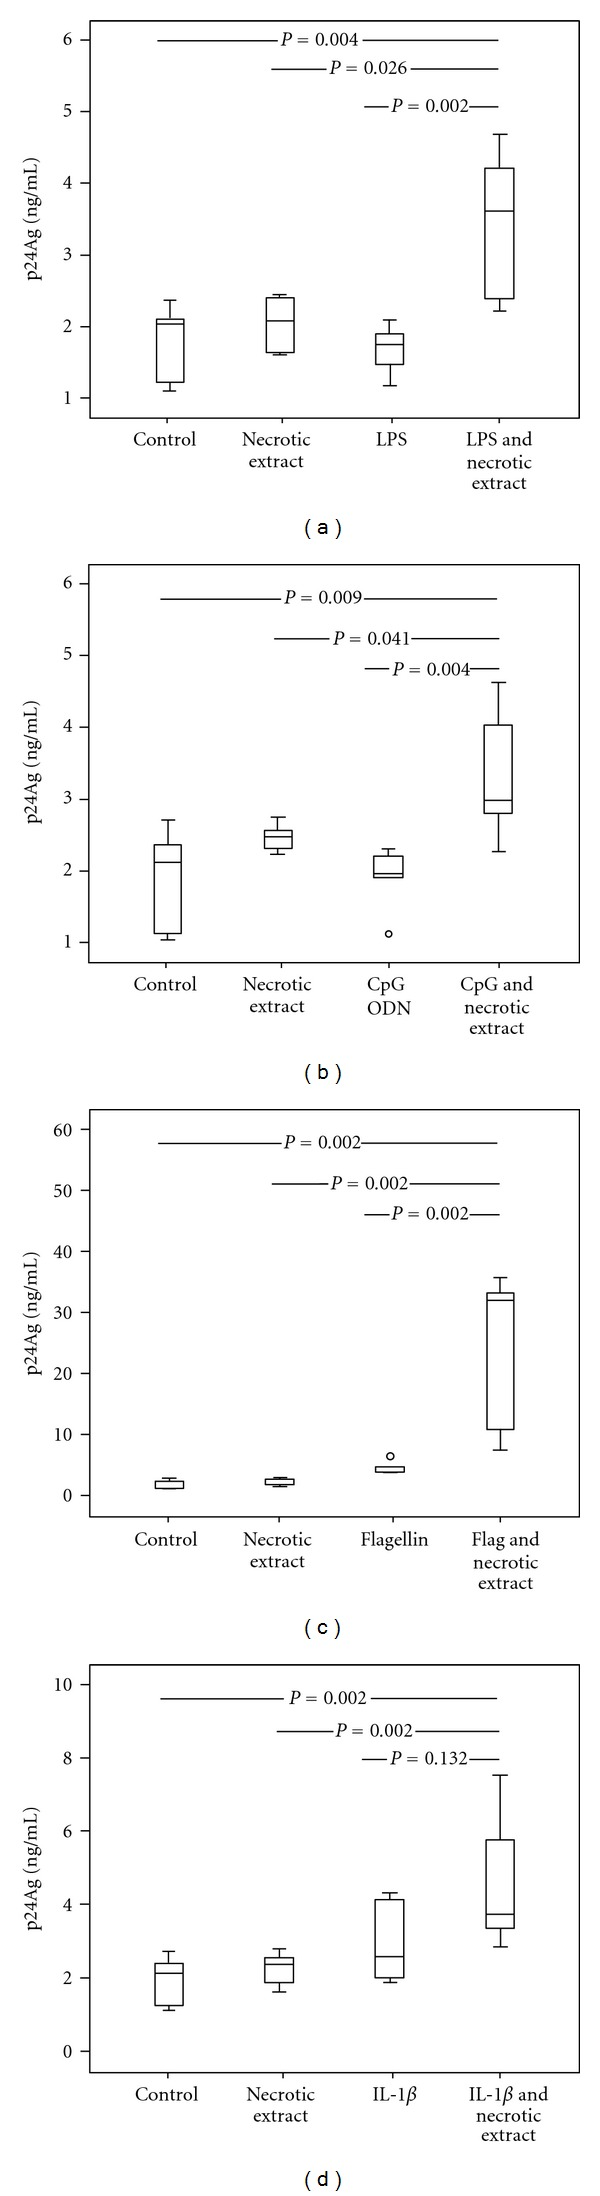 Necrotic extract and TLR-ligands in complexes upregulate viral replication in U1 cells. U1 cell cultures were stimulated with necrotic extract (HMGB1 concentration 1 μ g/mL) and Toll-like receptor ligands: LPS 10 ng/mL (a), CpG-ODN 1 μ g/mL (b), flagellin 50 ng/mL (c), and IL-1 β 0.25 ug/mL (d) alone or in complexes. Supernatants from mock cells served as controls. Supernatants were collected from cell cultures after 72 hours. Results from three independent experiments in duplicates are presented.